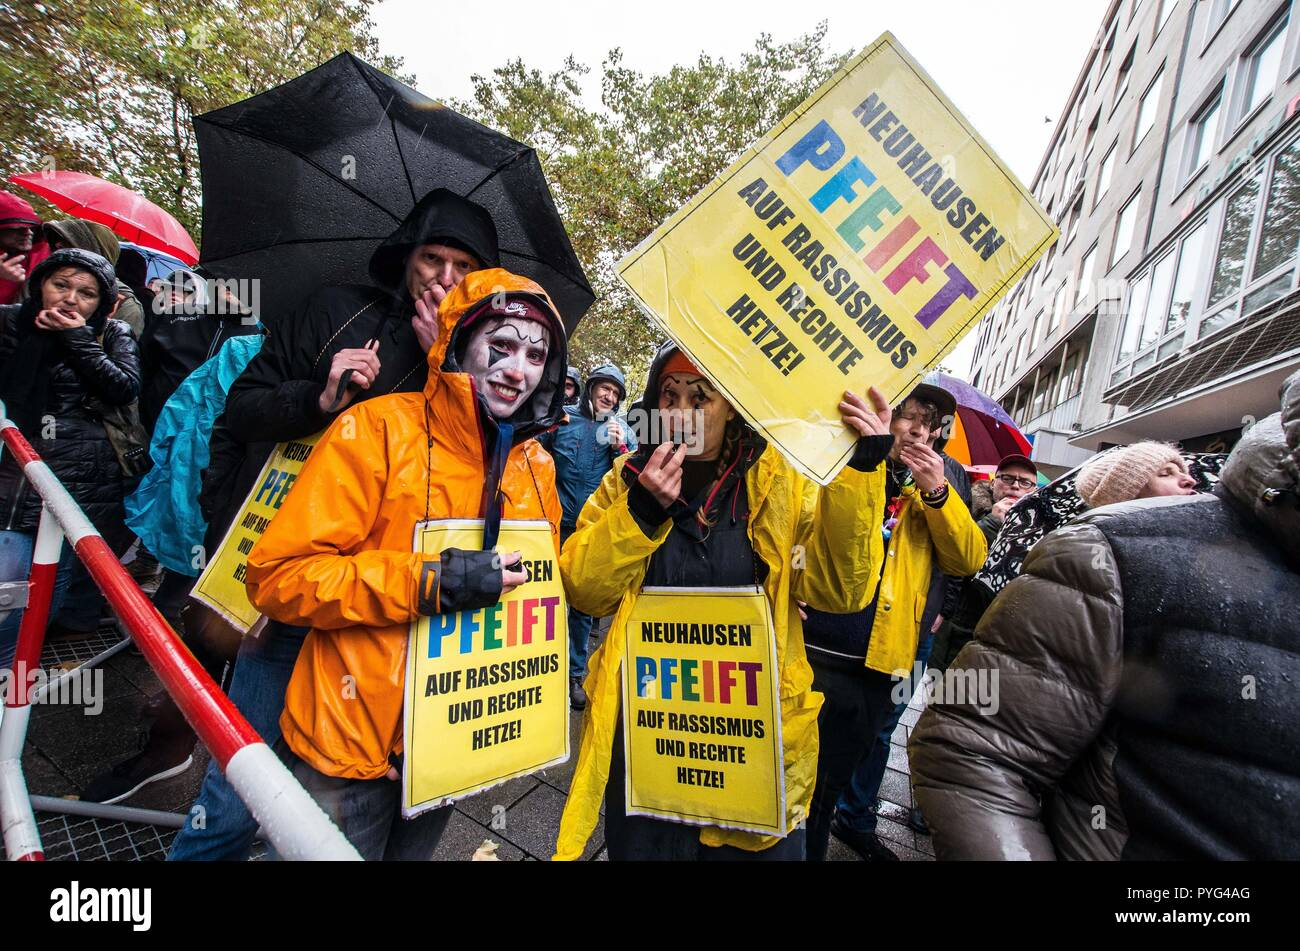 """Munich, Bavaria, Germany. 27th Oct, 2018. Counter-demonstrators against Pegida using the ''Neuhausen Pfeift'' action signs. Attempting to draw more followers and expand PEGIDA into Bavaria, """"Pegida Dresden"""""""" announced an appearance by founders LUTZ BACHMANN and SIEGFRIED DAEBRITZ in Munich's Neuhausen district. Ultimately, the two did not arrive, leaving approximately 40 Pegida followers to march against over 450 counter-demonstrators. Pegida Dresden in Munich is actually Pegida Nuremburg who is attempting to expand south to Munich where the rival Pegida Muenchen is already active. Stock Photo"""